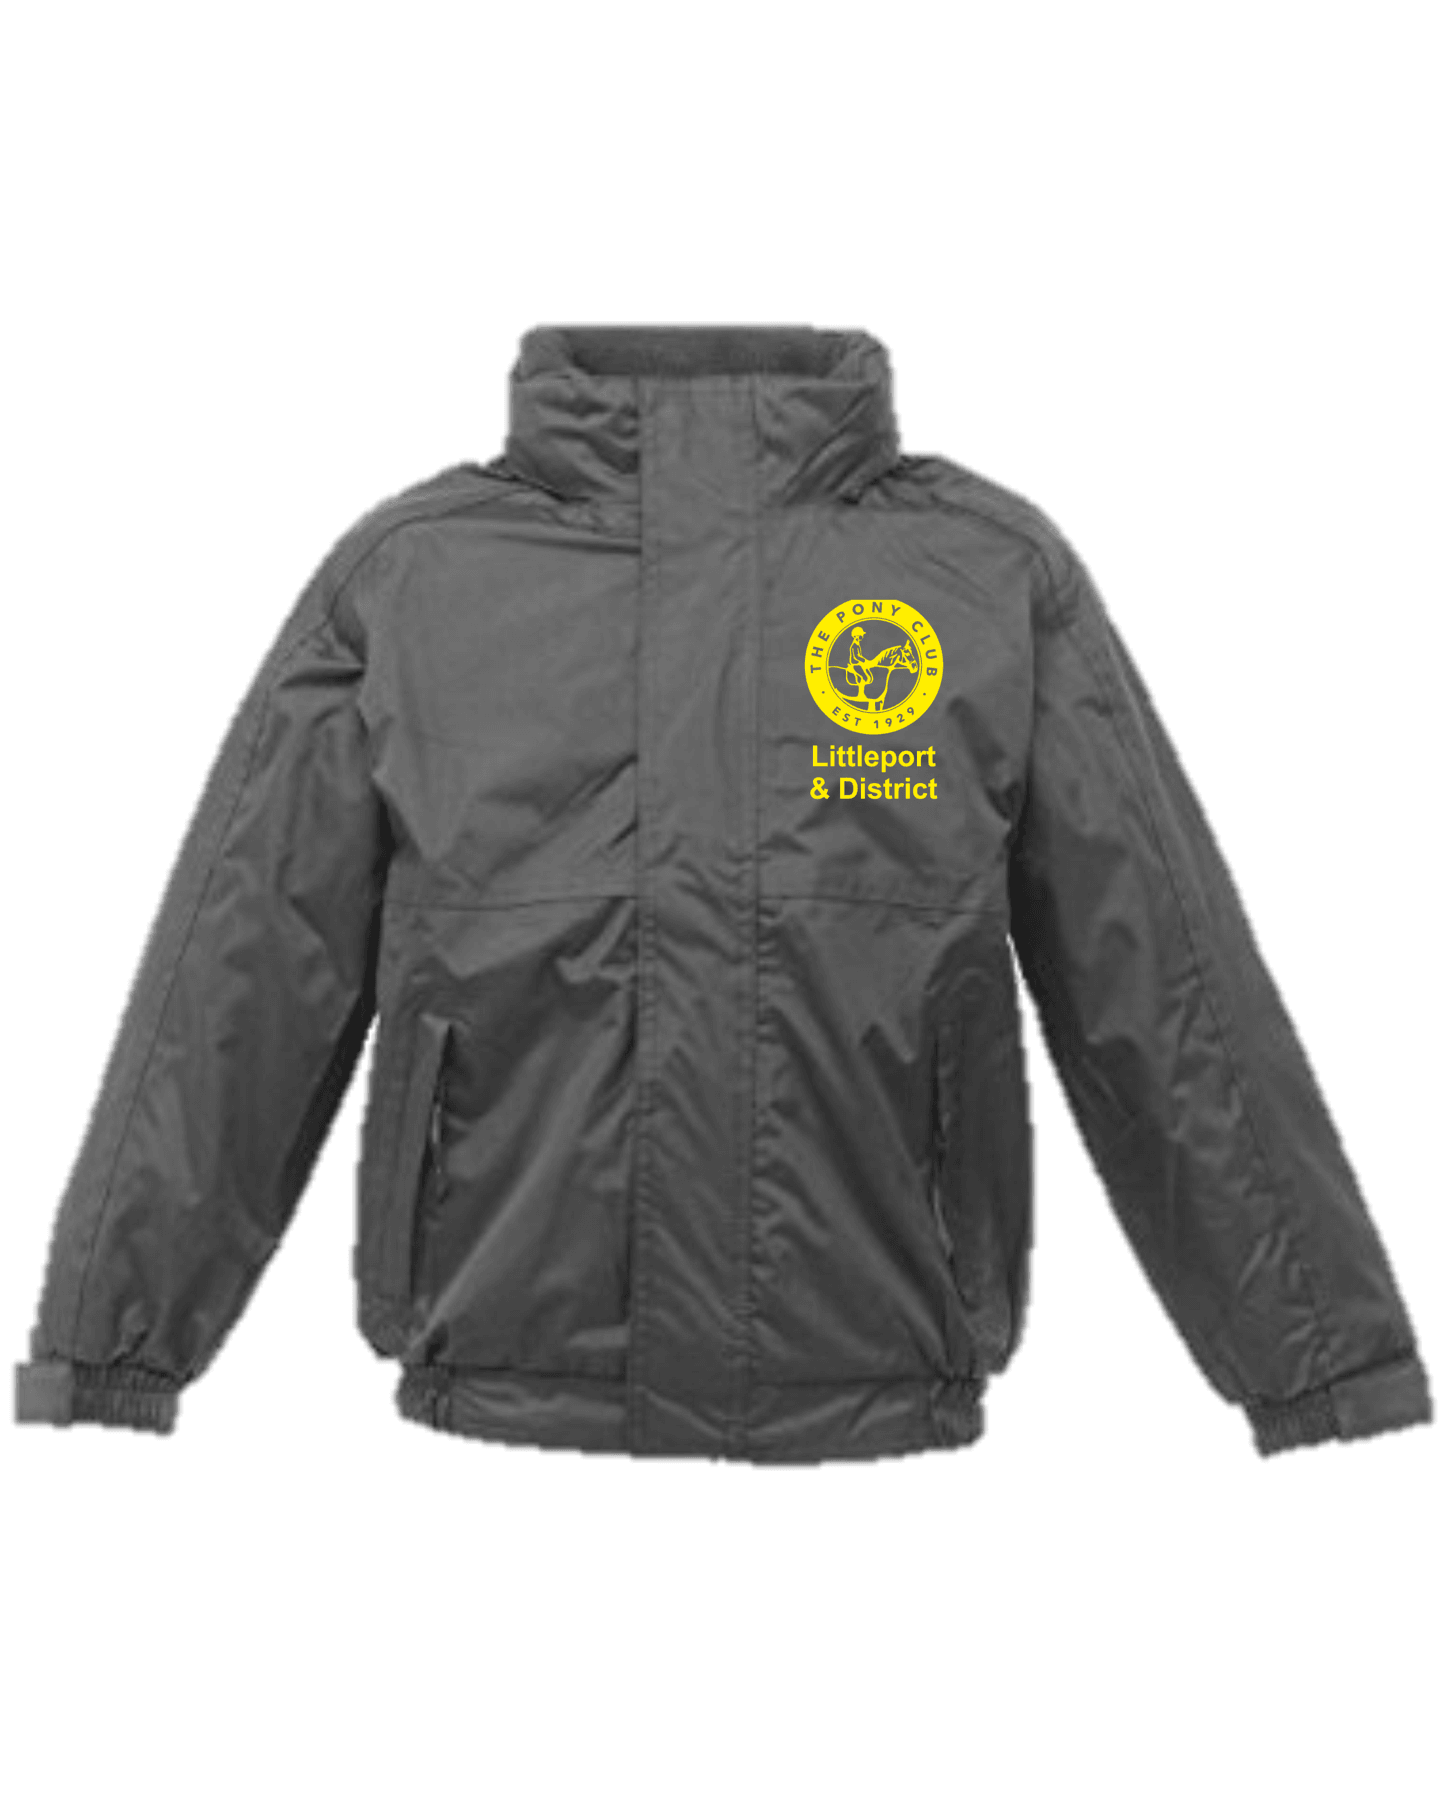 Littleport & District Pony Club – Dover Jacket Kids